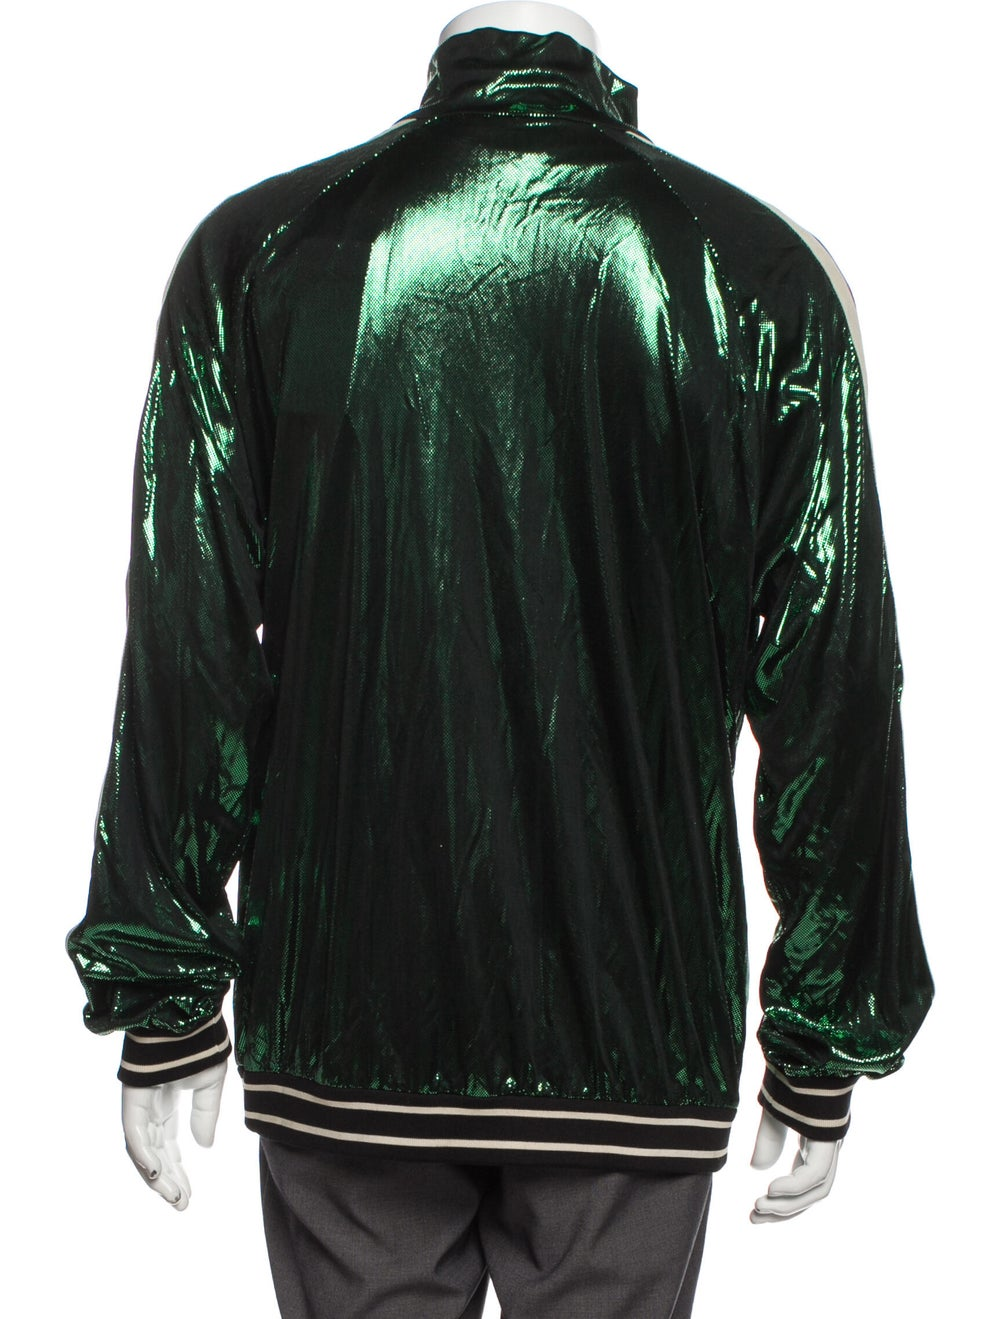 Gucci 2019 Bomber Jacket w/ Tags Green - image 3